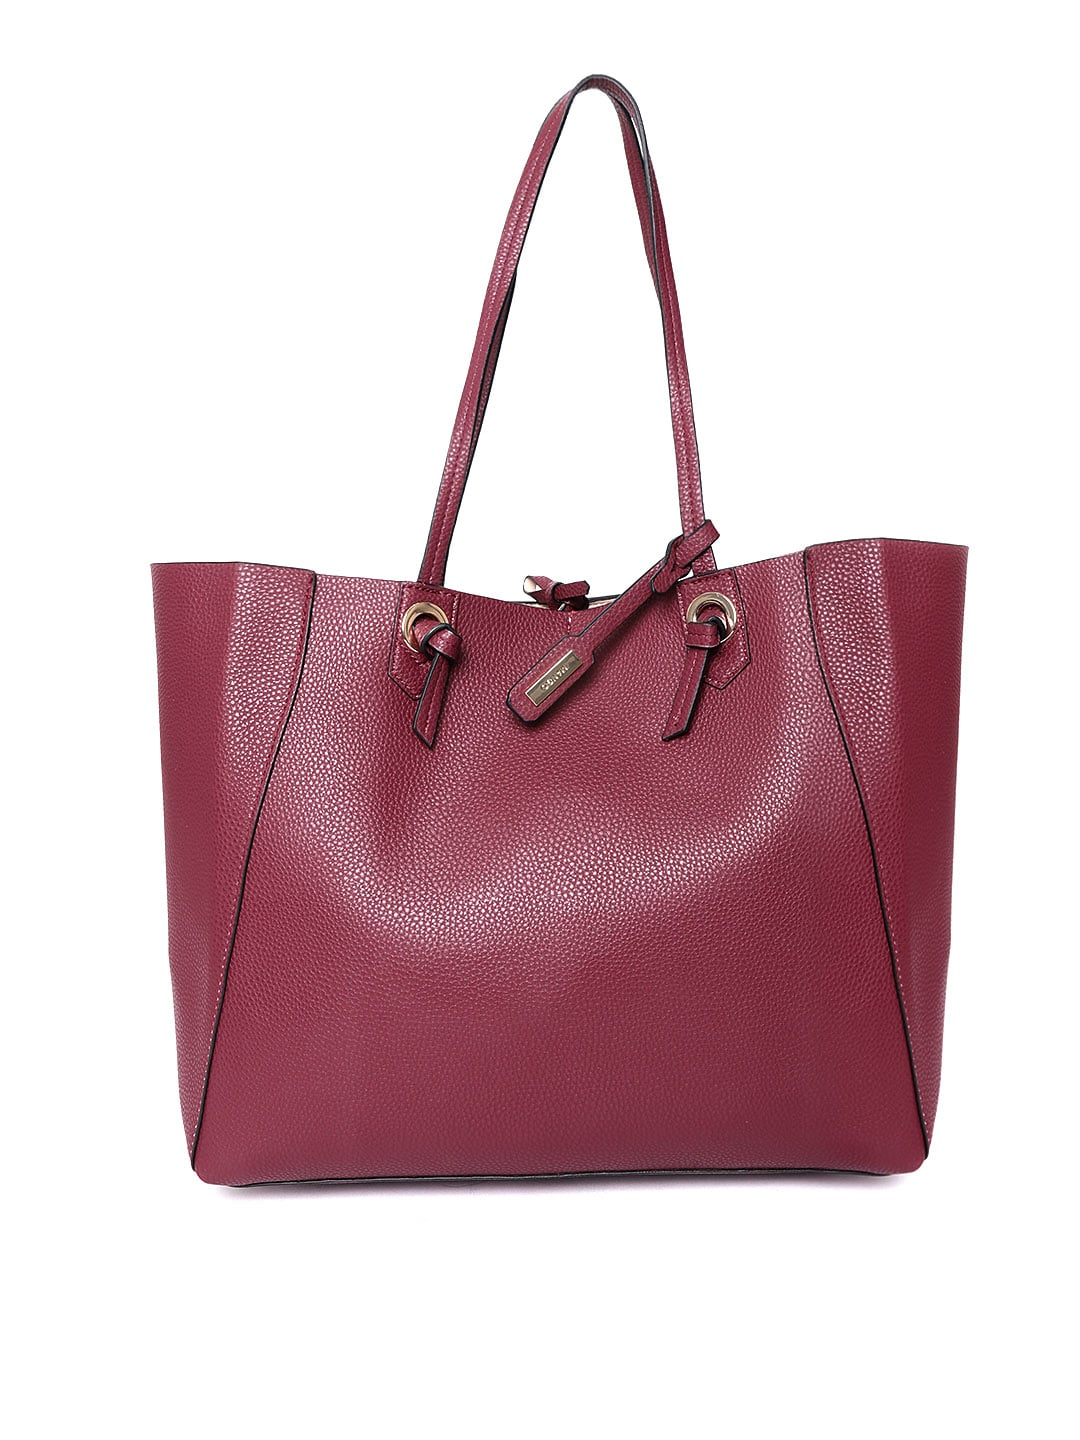 eeb3103e03c6 Handbags for Women - Buy Leather Handbags